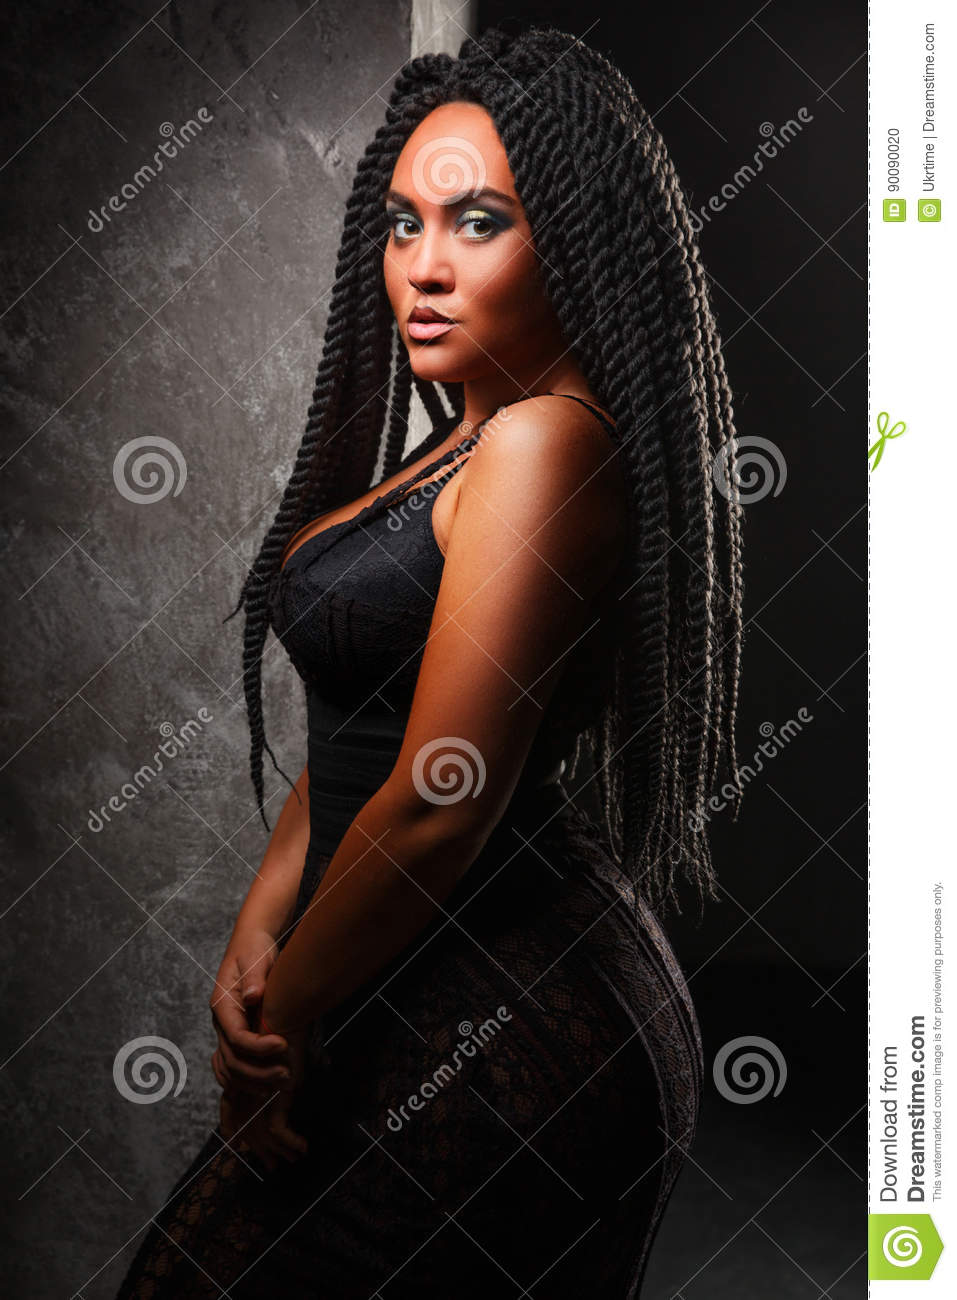 A Girl In A Black Corset Stylish Hairstyle Dreadlocks Black Long